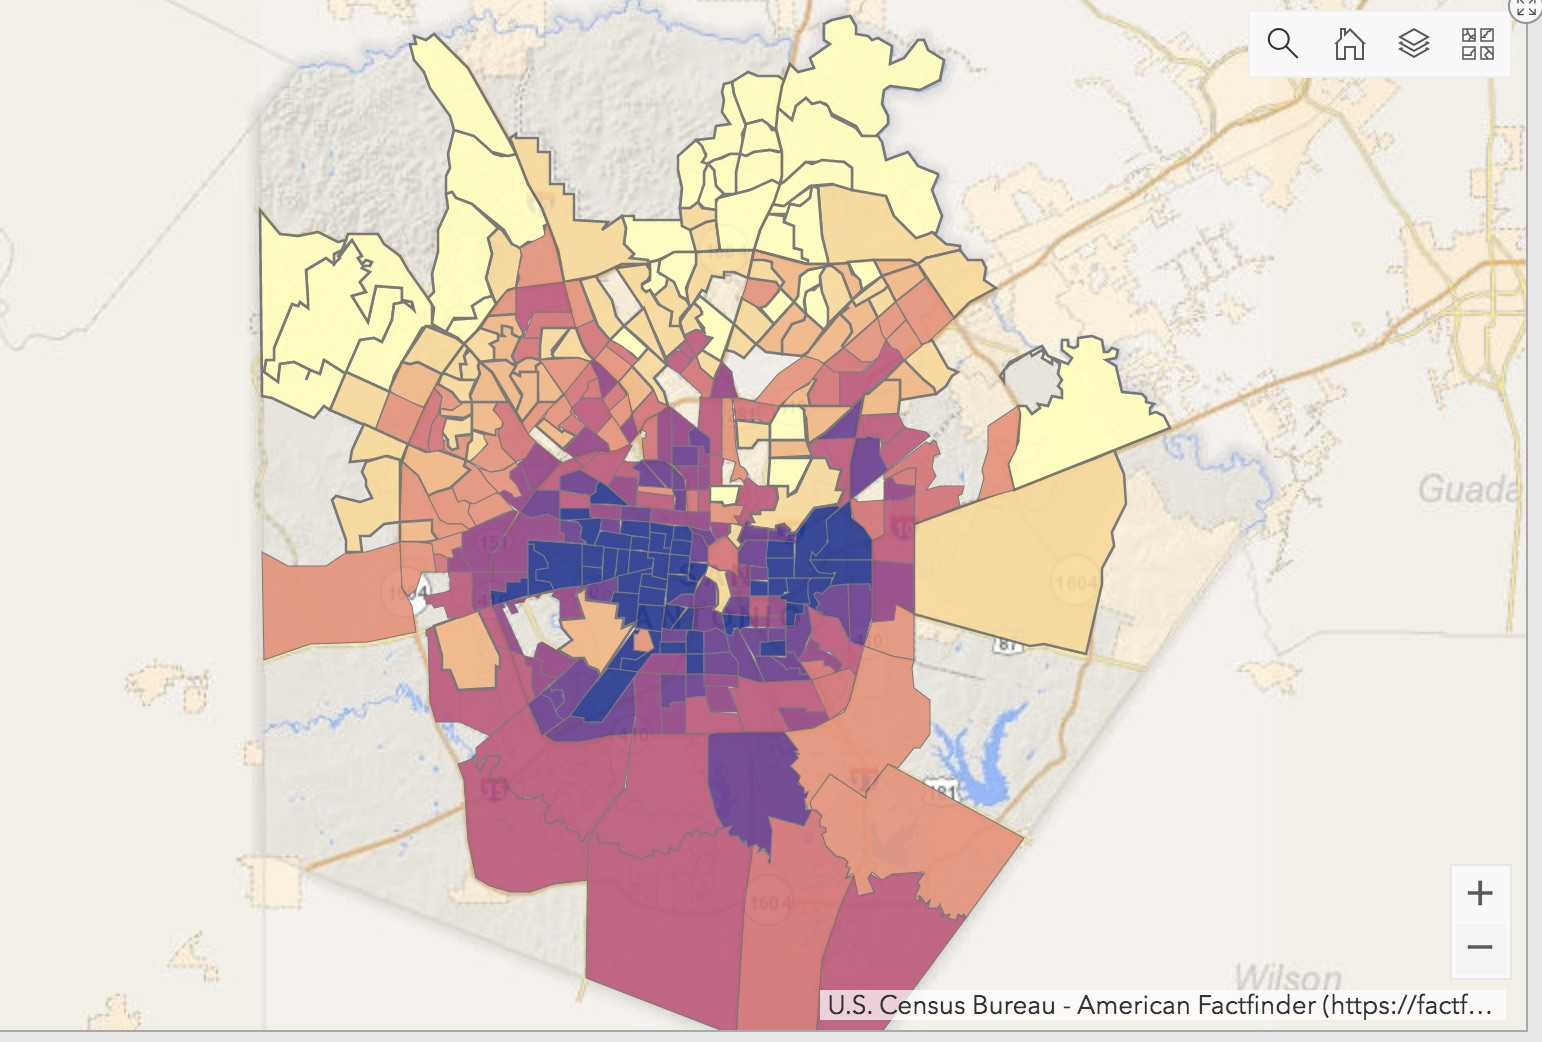 The scores that range from 2 (light yellow) to 10 (blue) are a combined score of the race and income tabs, indicating that the higher the number, the higher the concentration of both people of color and low-income households in that census tract.